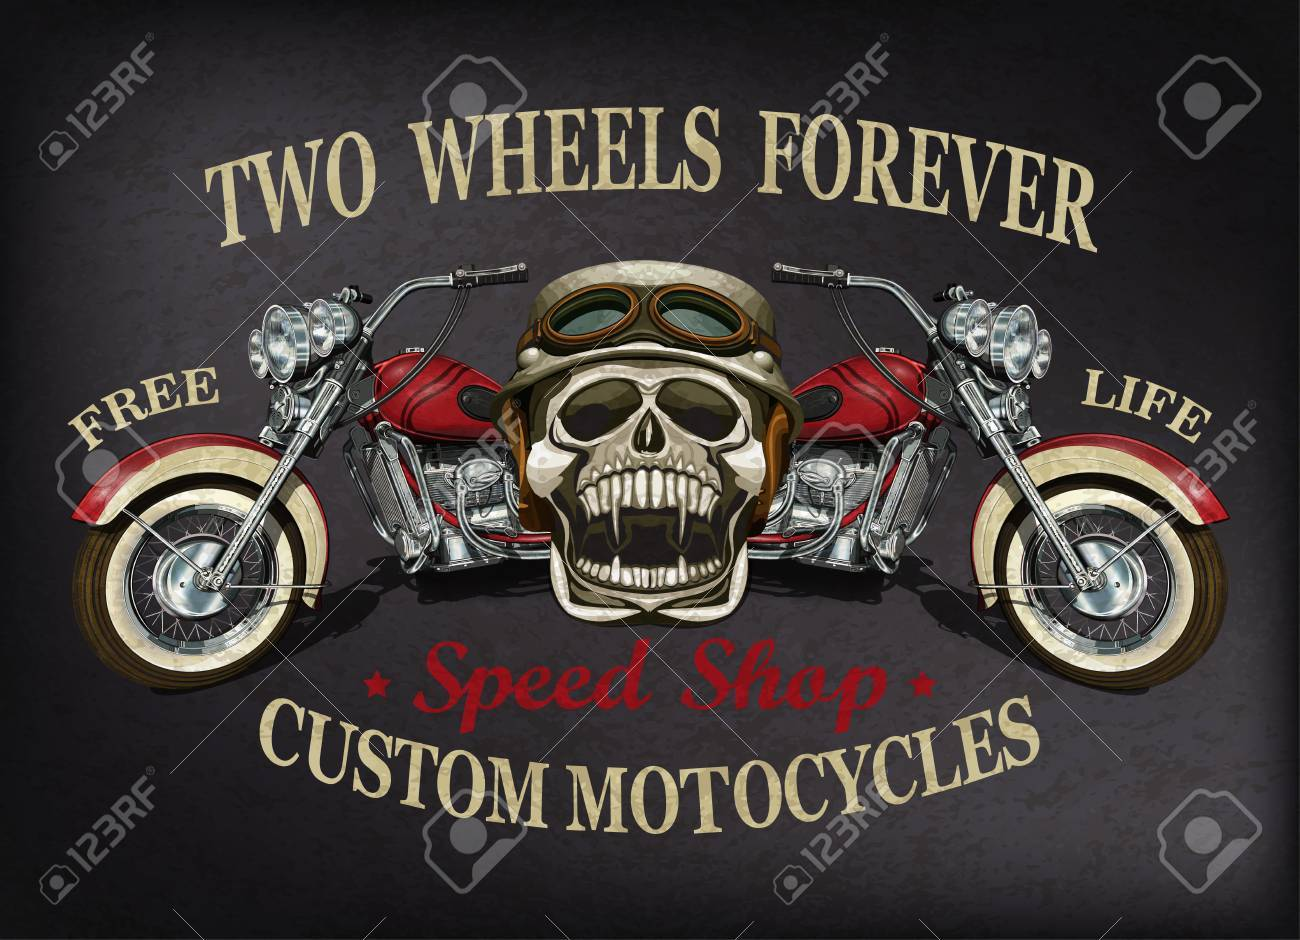 487fe7896 Vintage custom motorcycle poster , t-shirt print. Stock Vector - 84994645